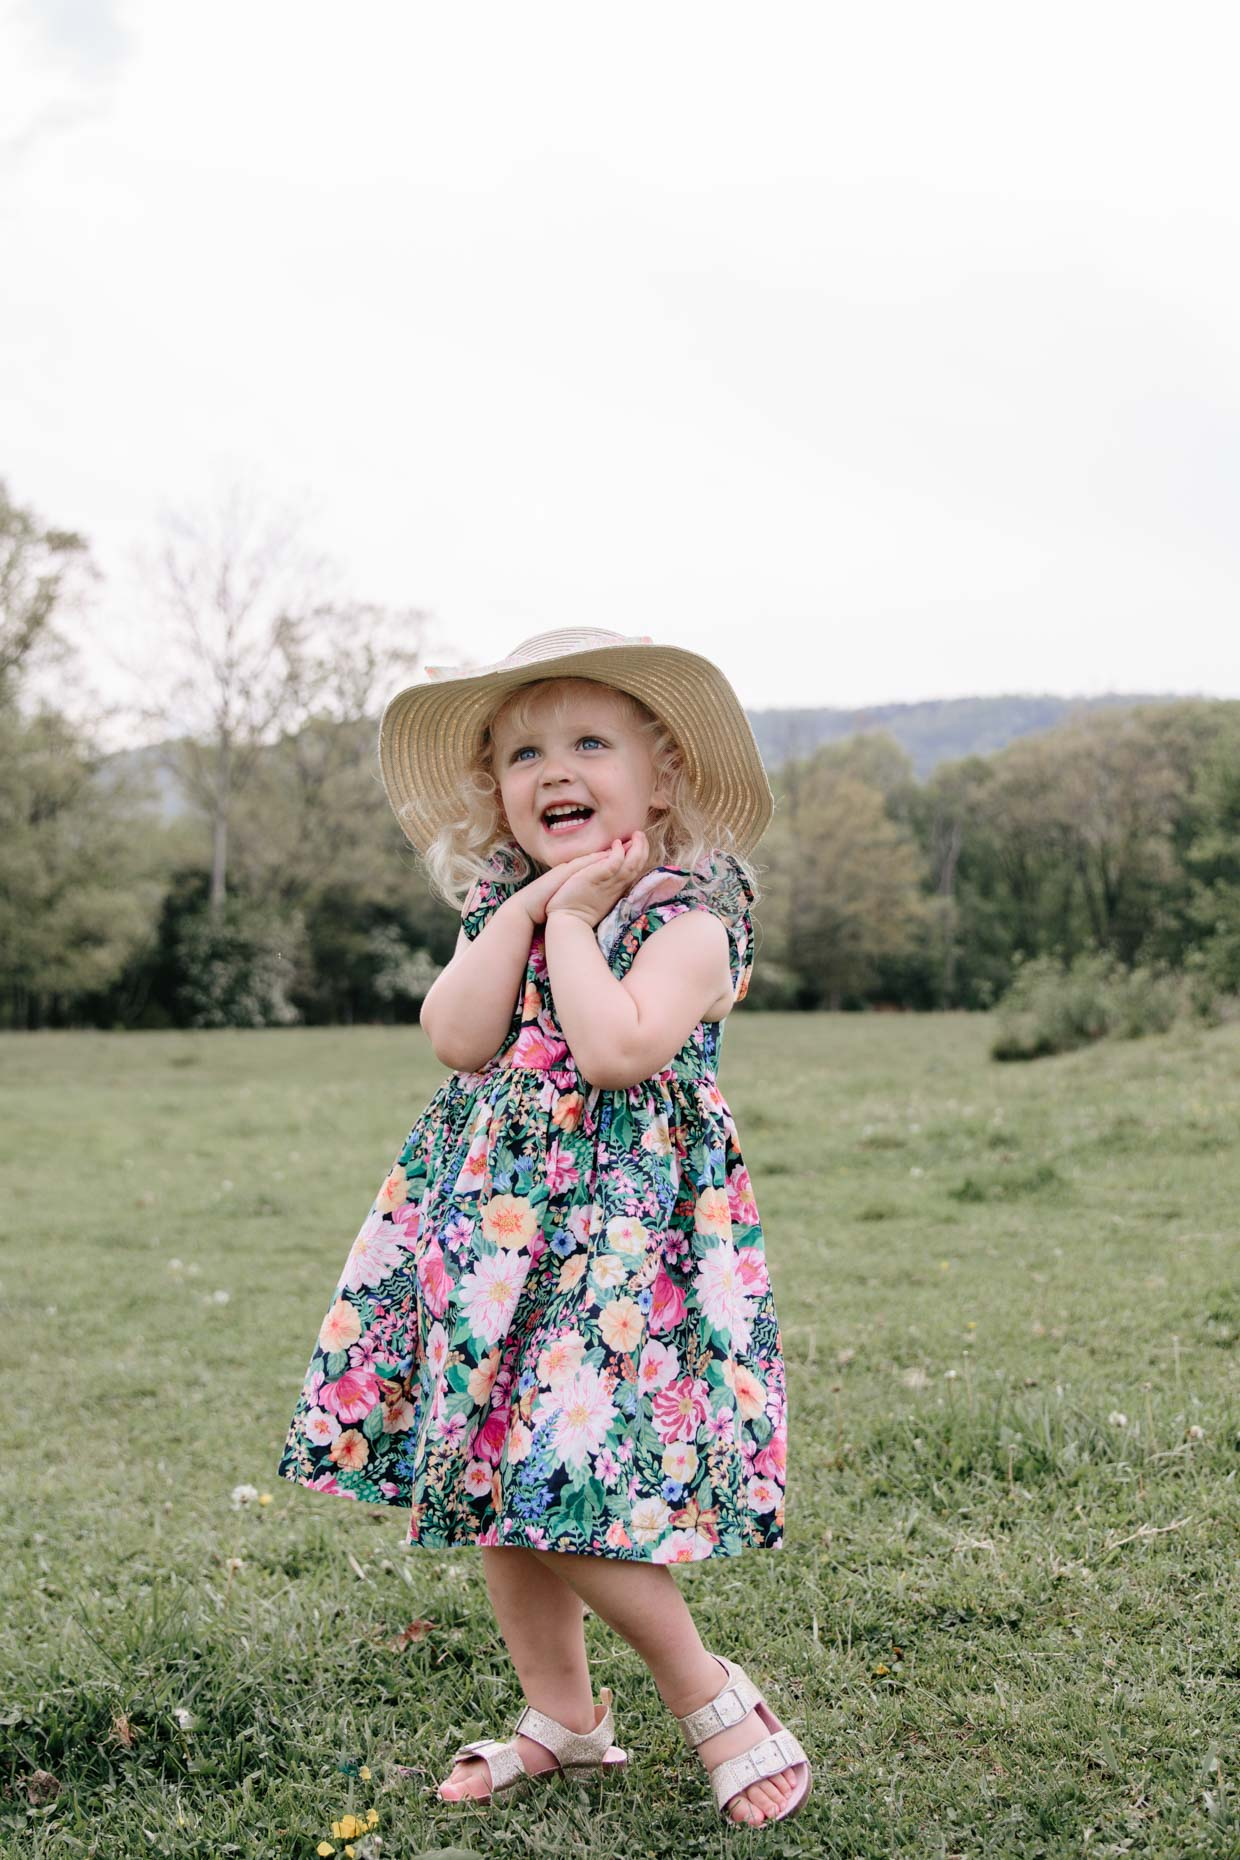 Meagan Brandon of Meagan's Moda shares outfit ideas for Mother's Day photo shoot